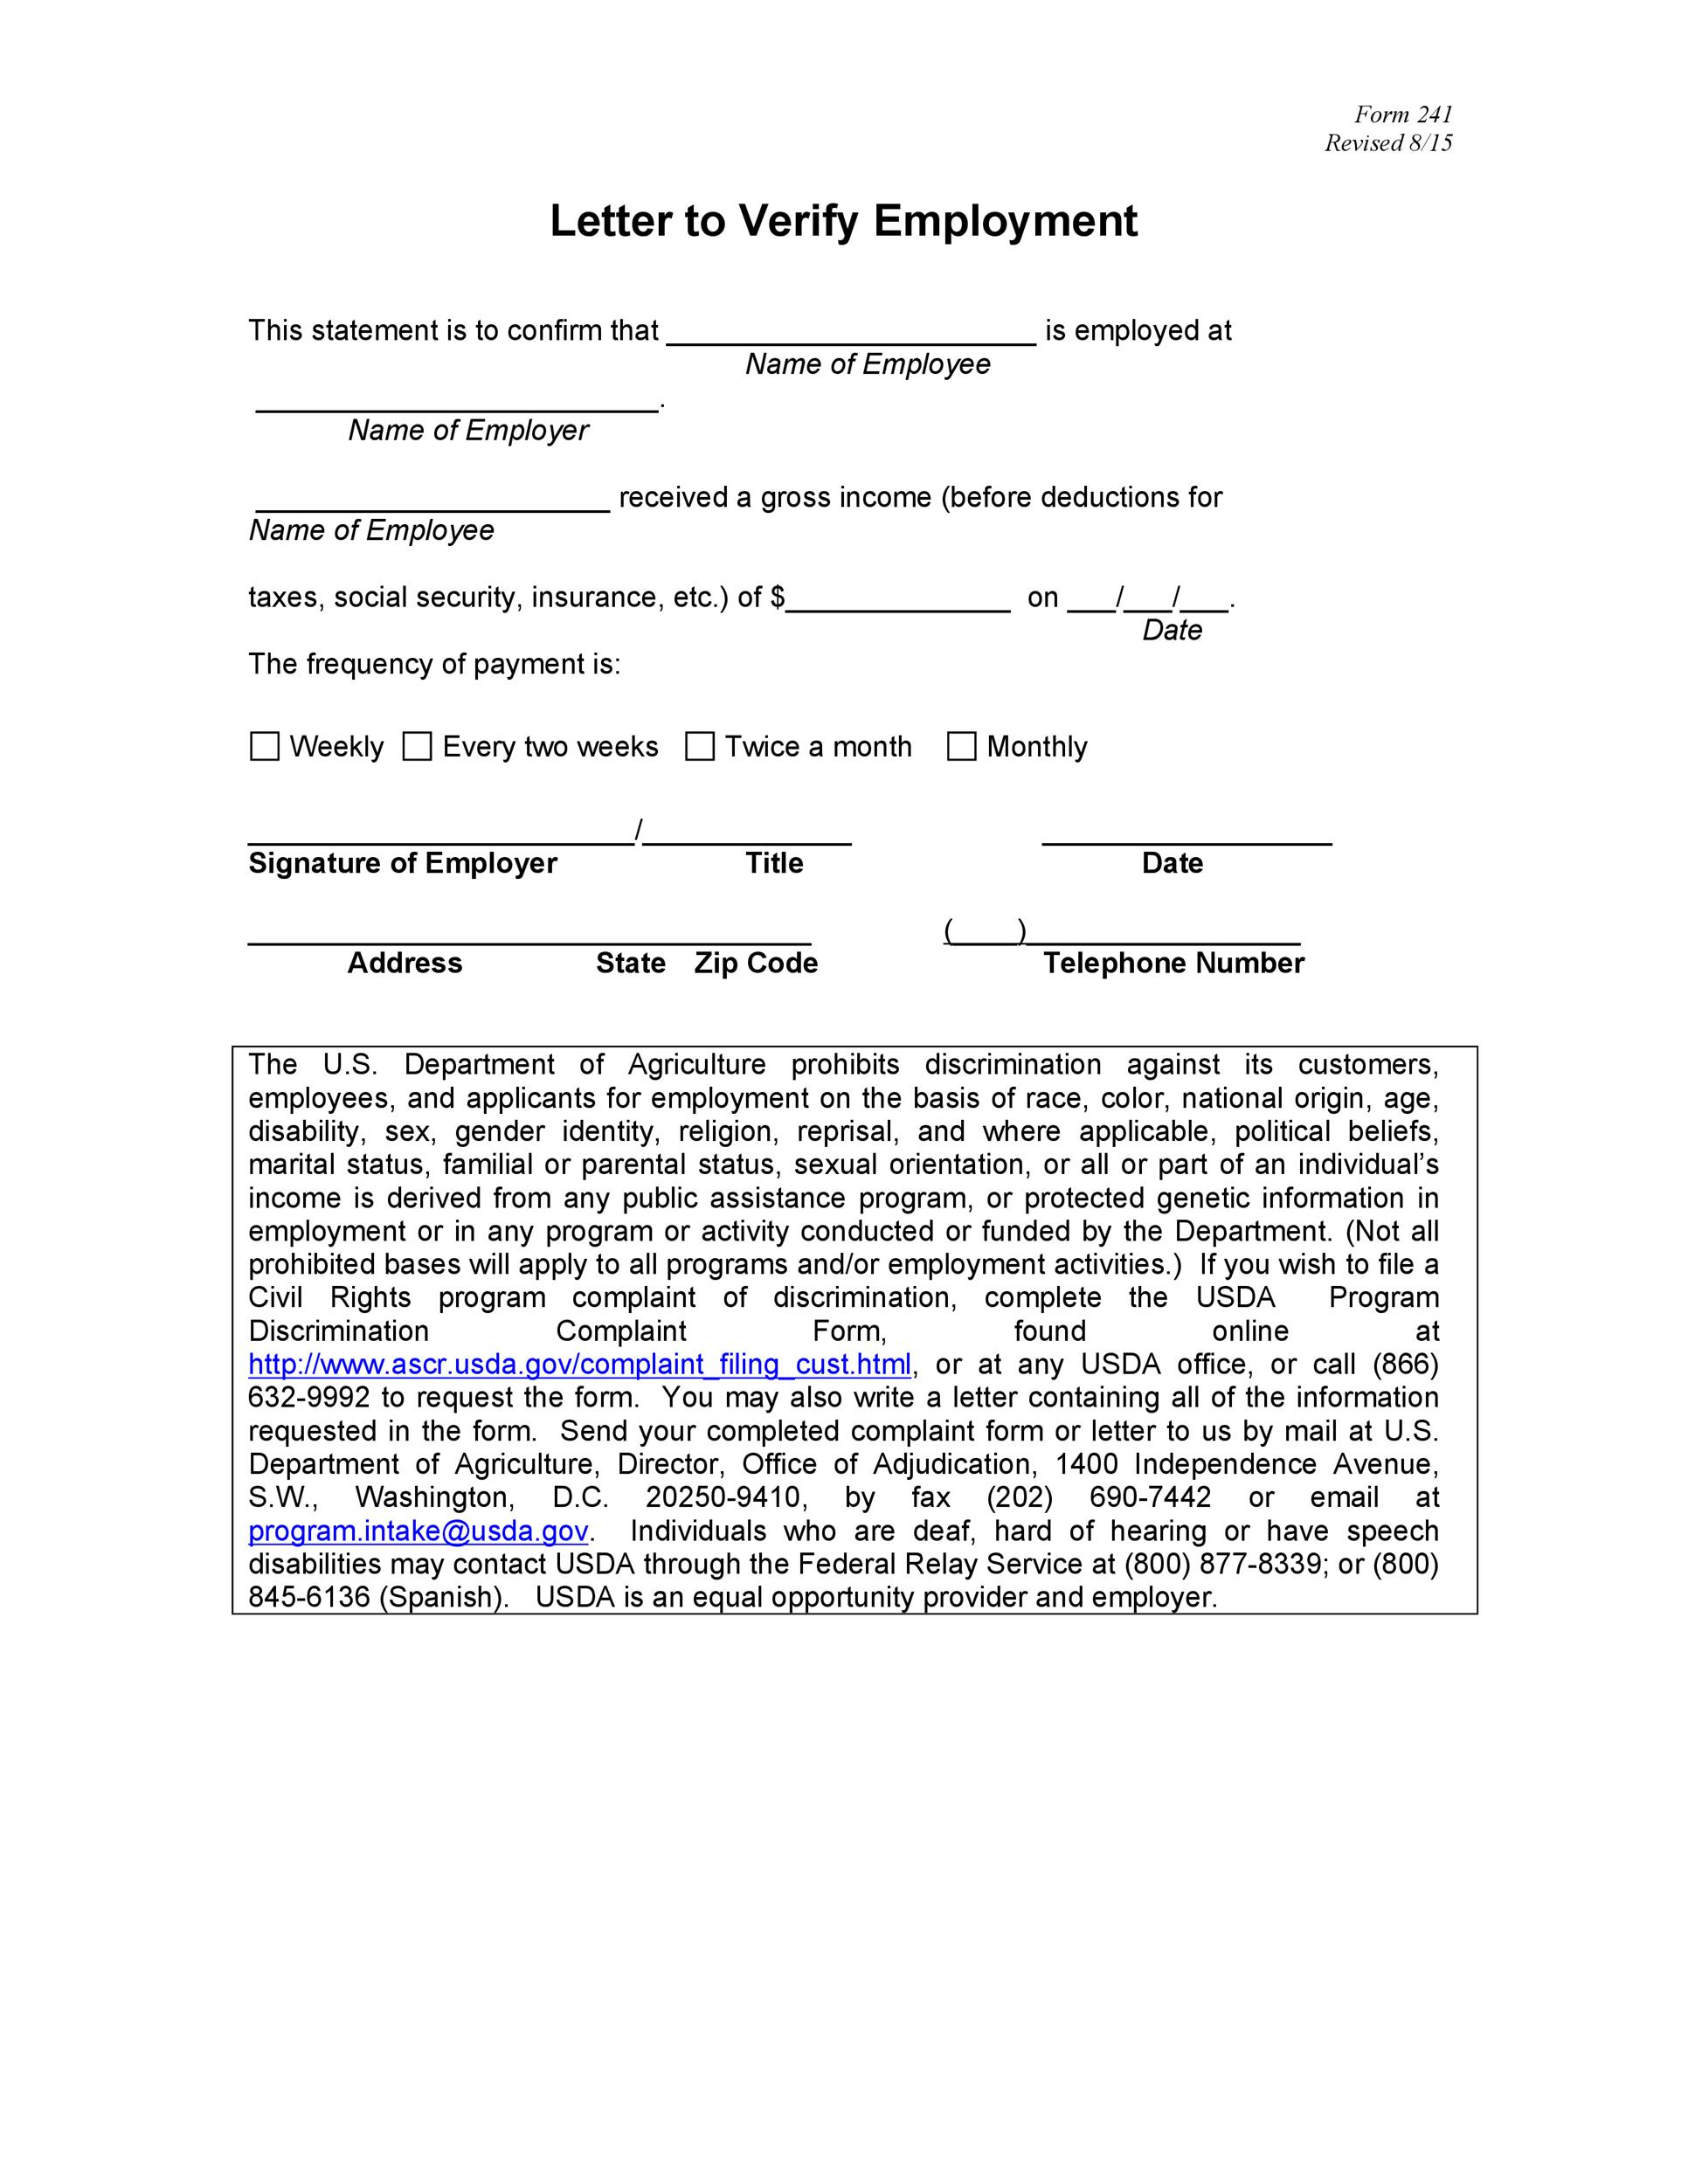 40 proof of employment letters verification forms samples printable proof of employment letter template 07 altavistaventures Images